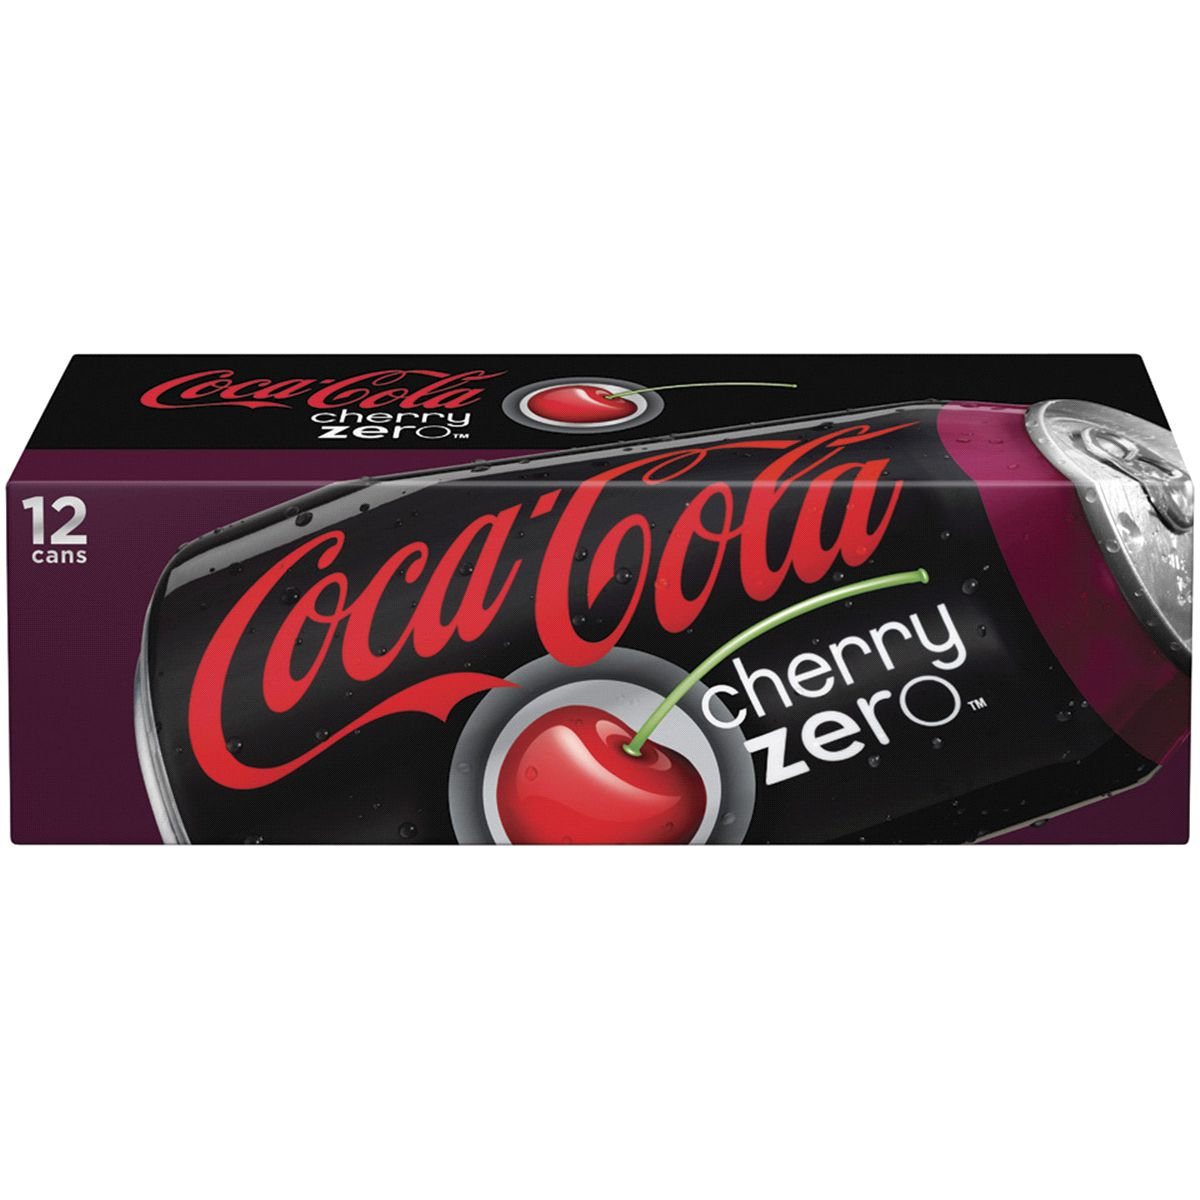 A box of cherry-flavored coca-cola cans